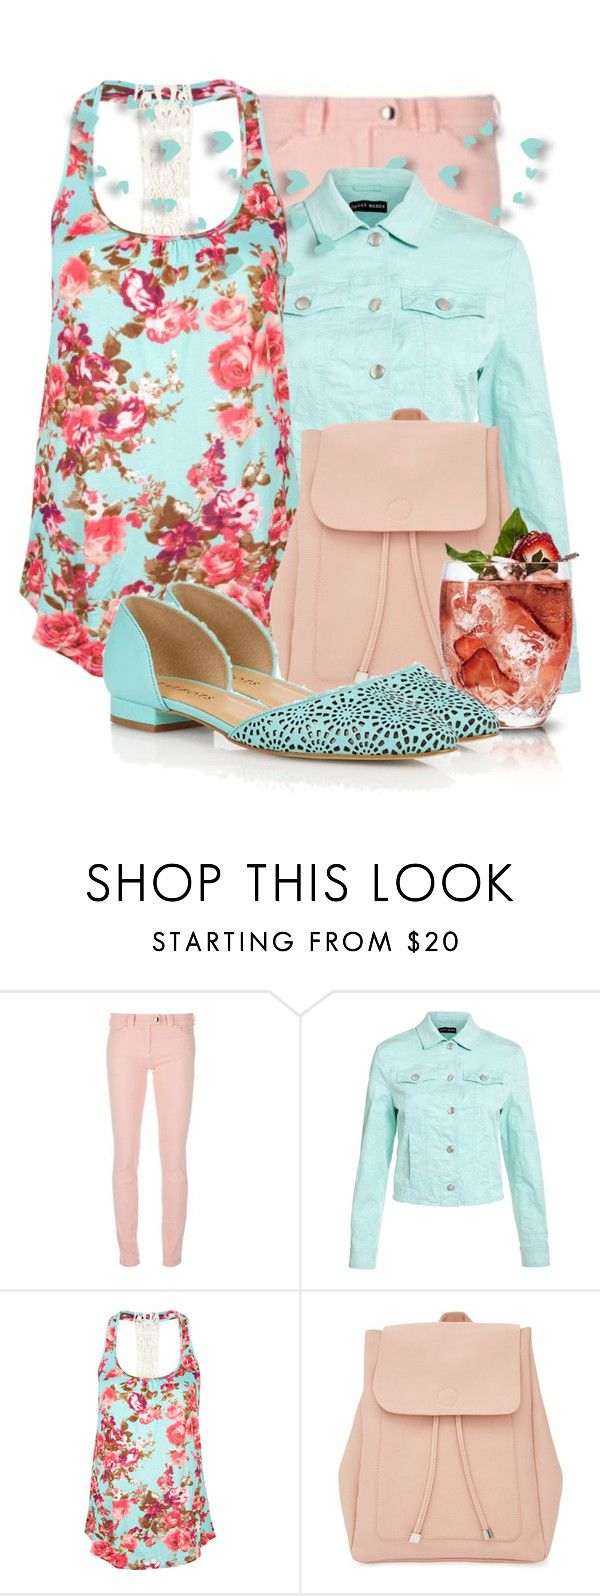 """""""Pink Leather-Look Backpack"""" by tasha1973 ❤ liked on Polyvore featuring Balenciaga, Gerry Weber, Full Tilt, New Look and Talbots"""